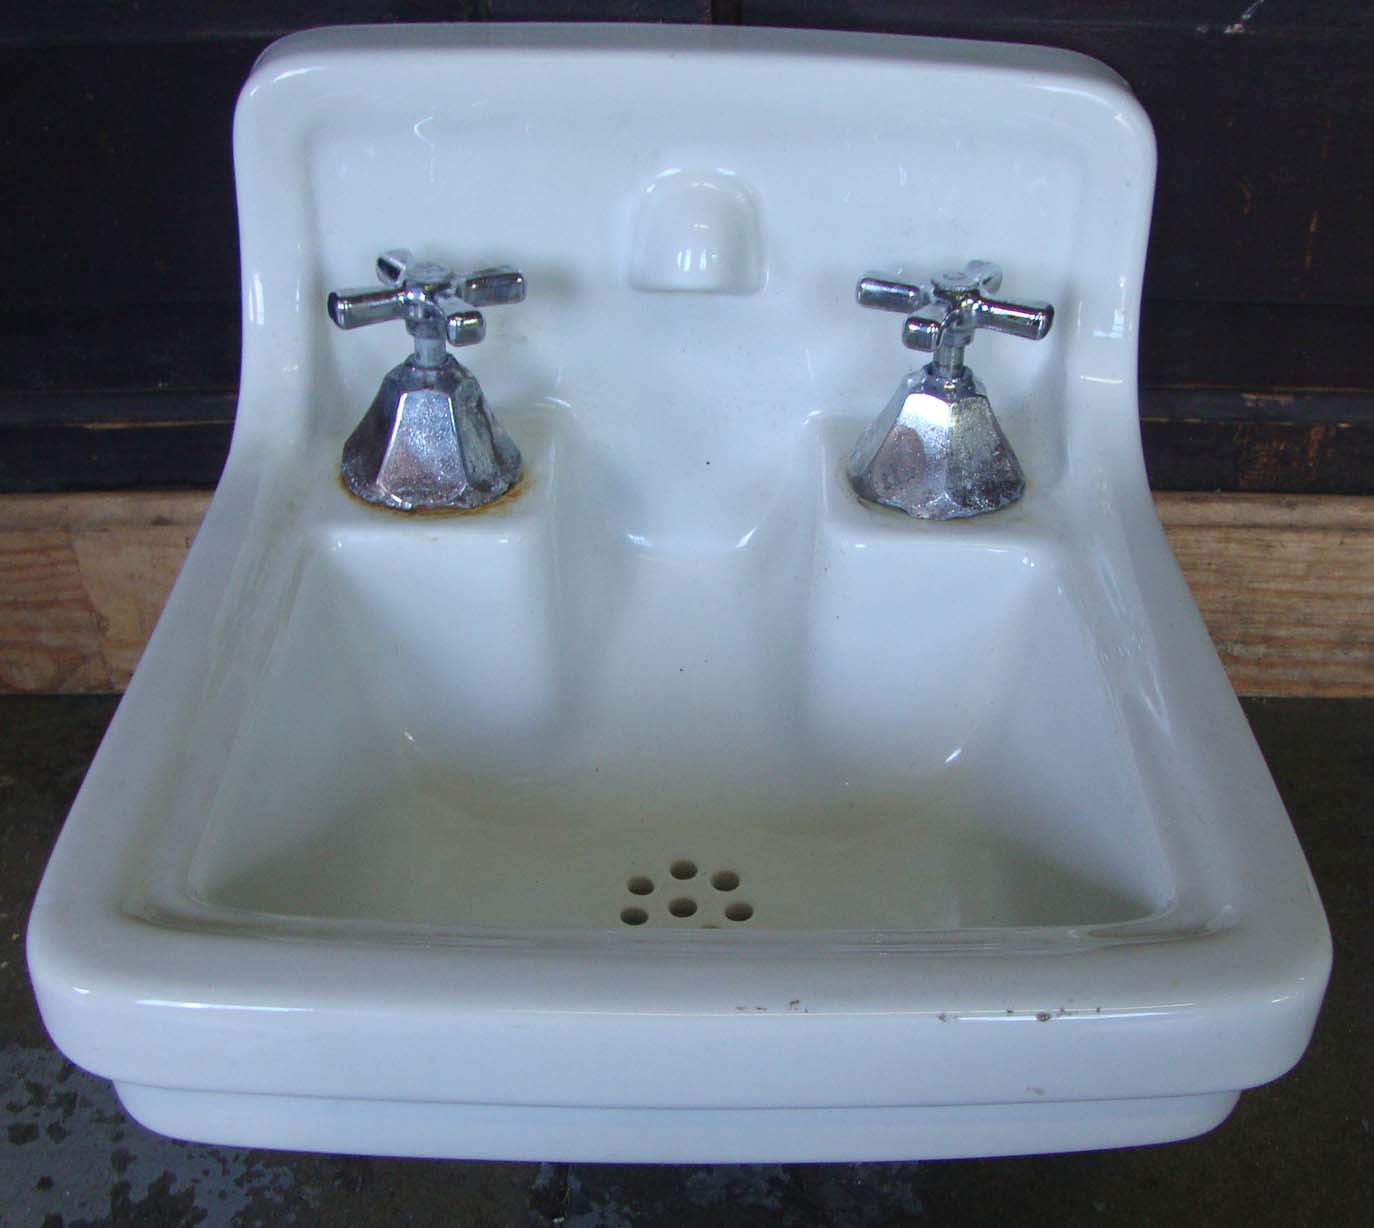 Fine Salvaged Sinks Ideas - Bathtub Ideas - dilata.info